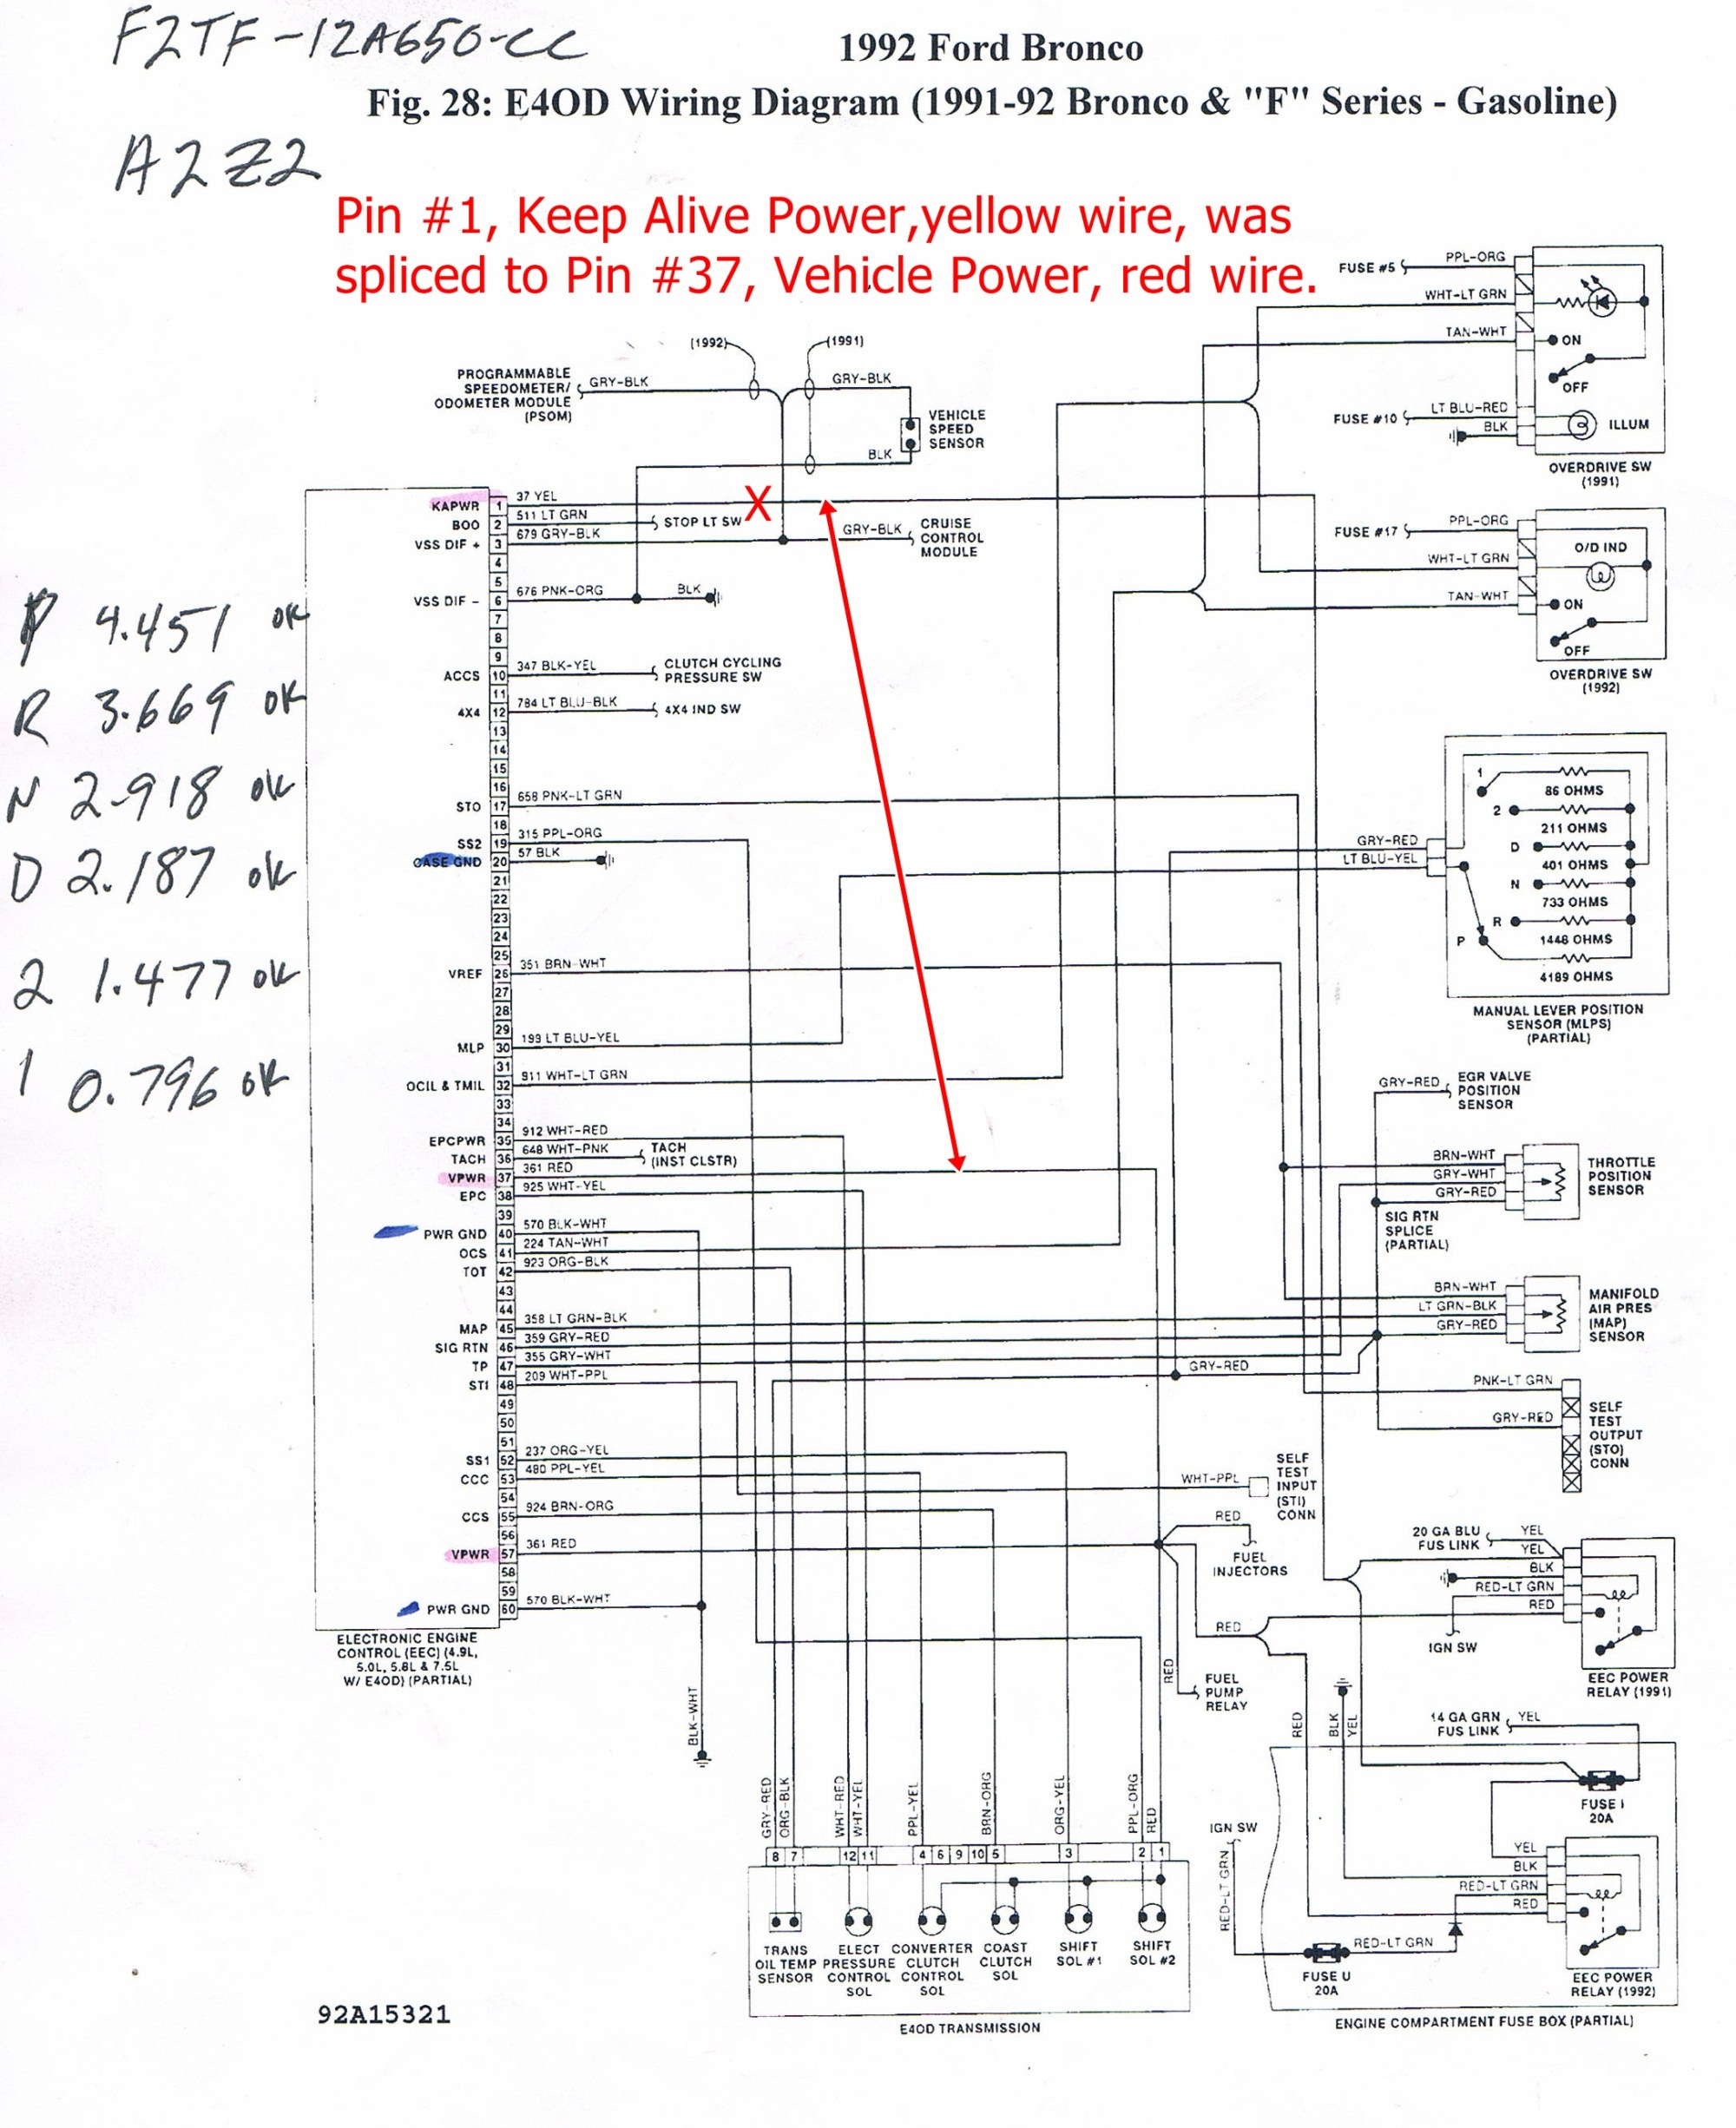 hight resolution of 94 trans wiring diagram wiring diagram detailed 94 accord ignition diagram 94 accord transmission wiring diagrams